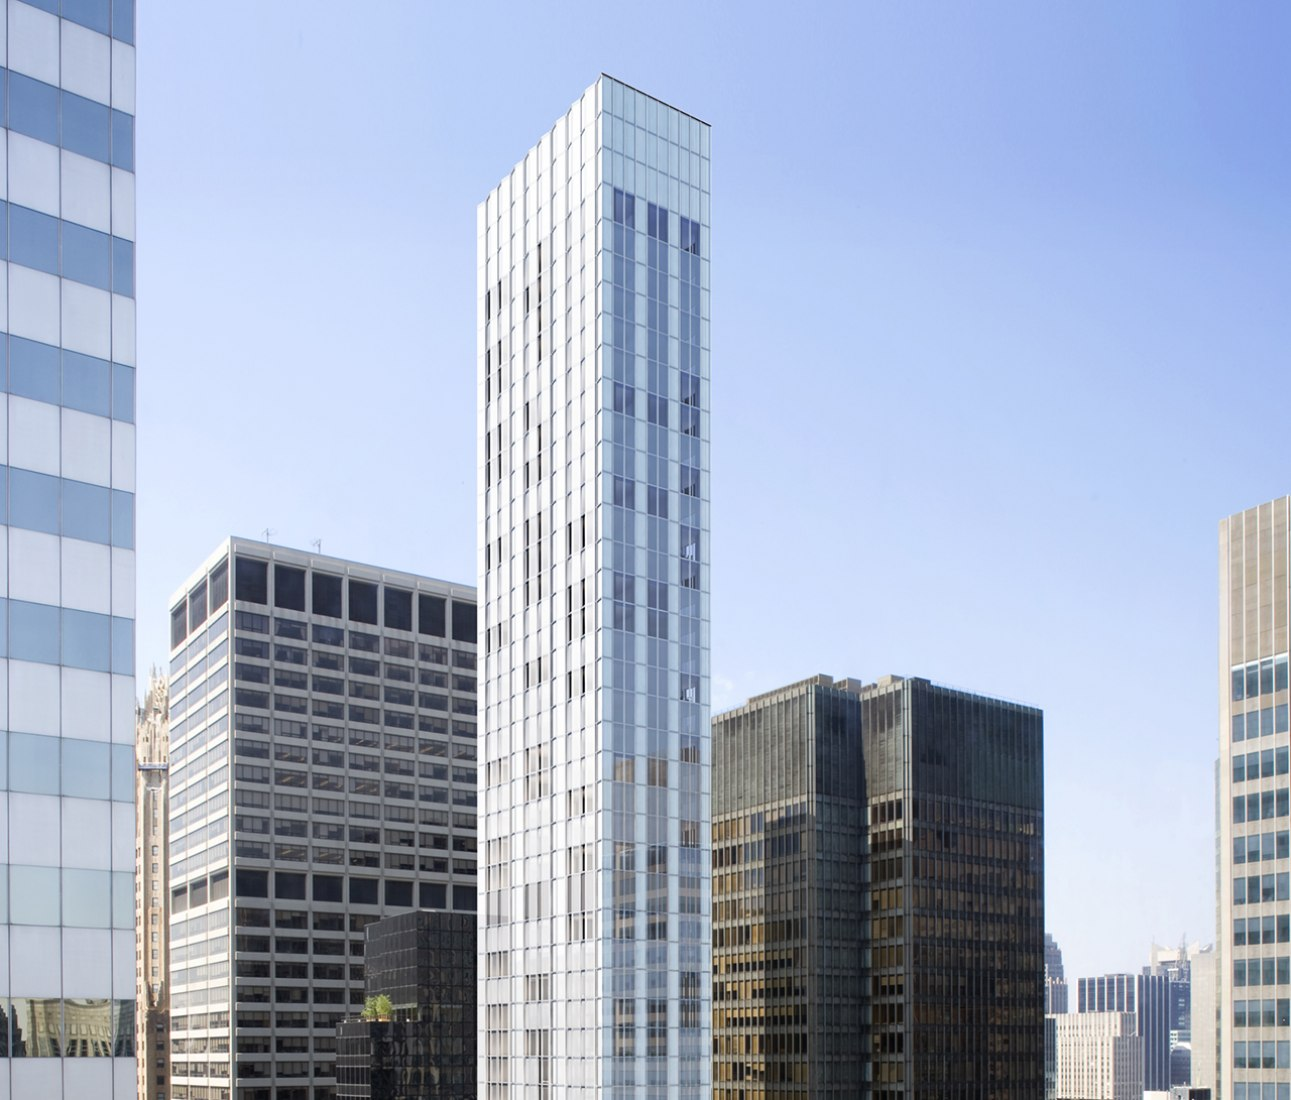 610 Lexington Avenue by Foster + Partners. Image courtesy of Foster + Partners